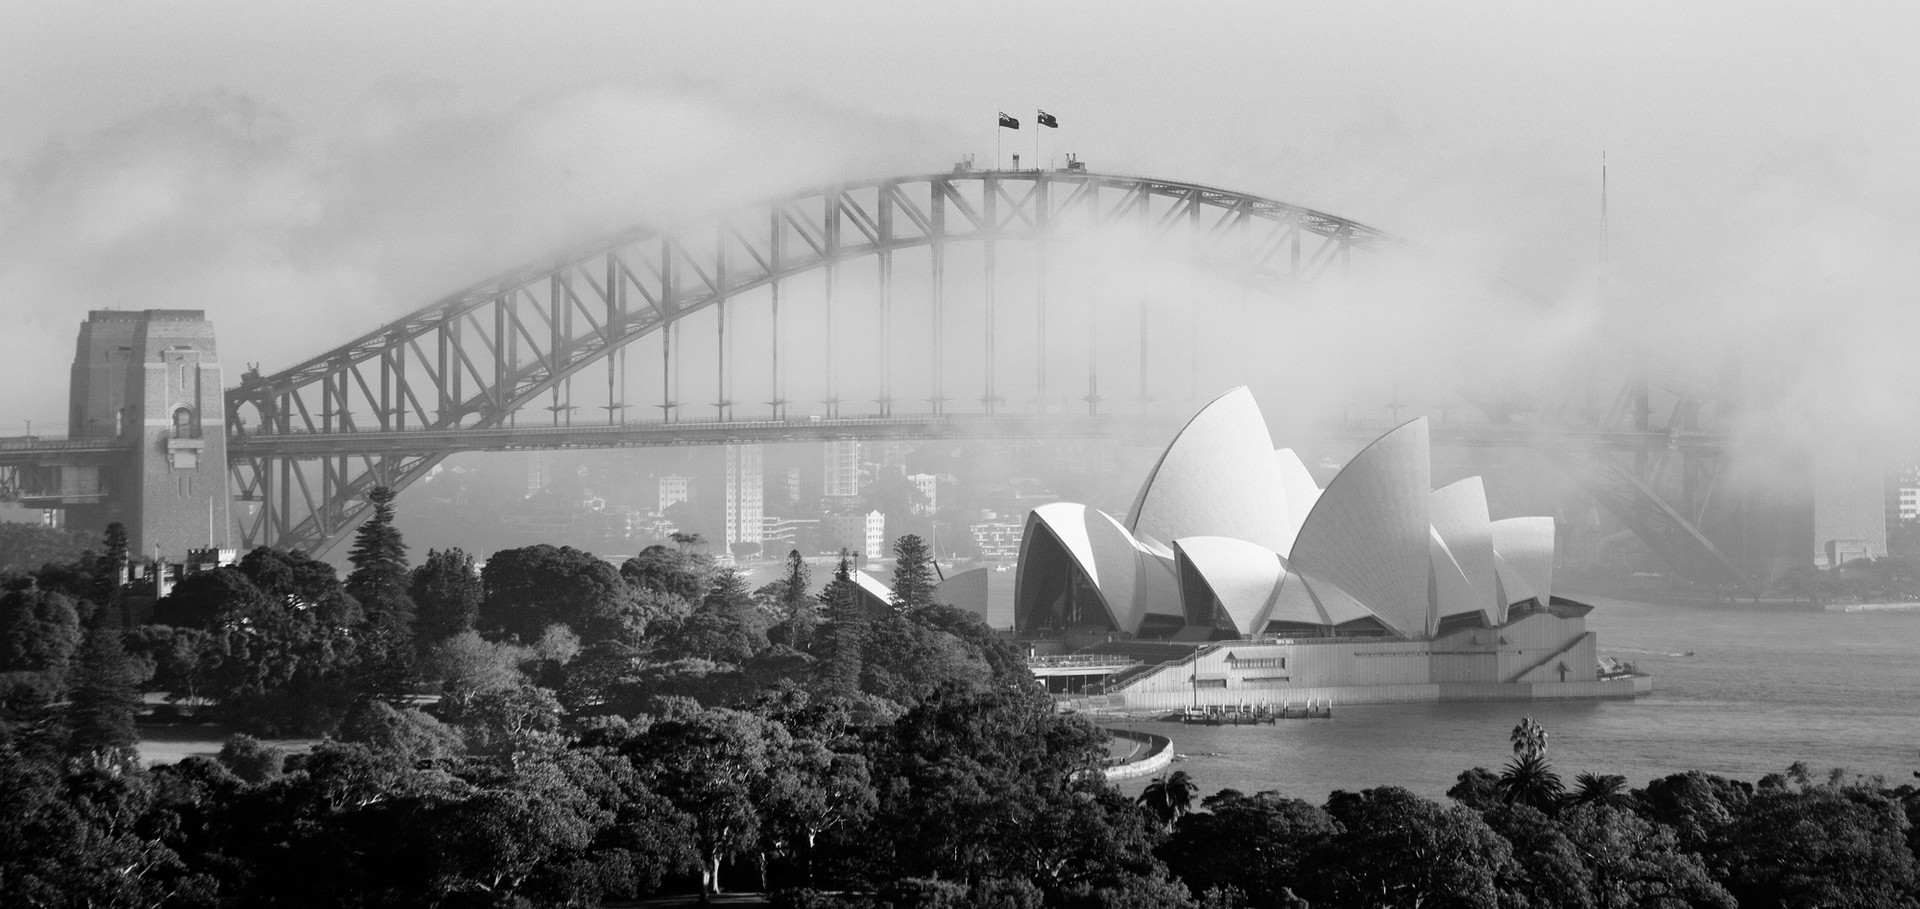 Sydney+Opera+House-Bridge_bw.jpg